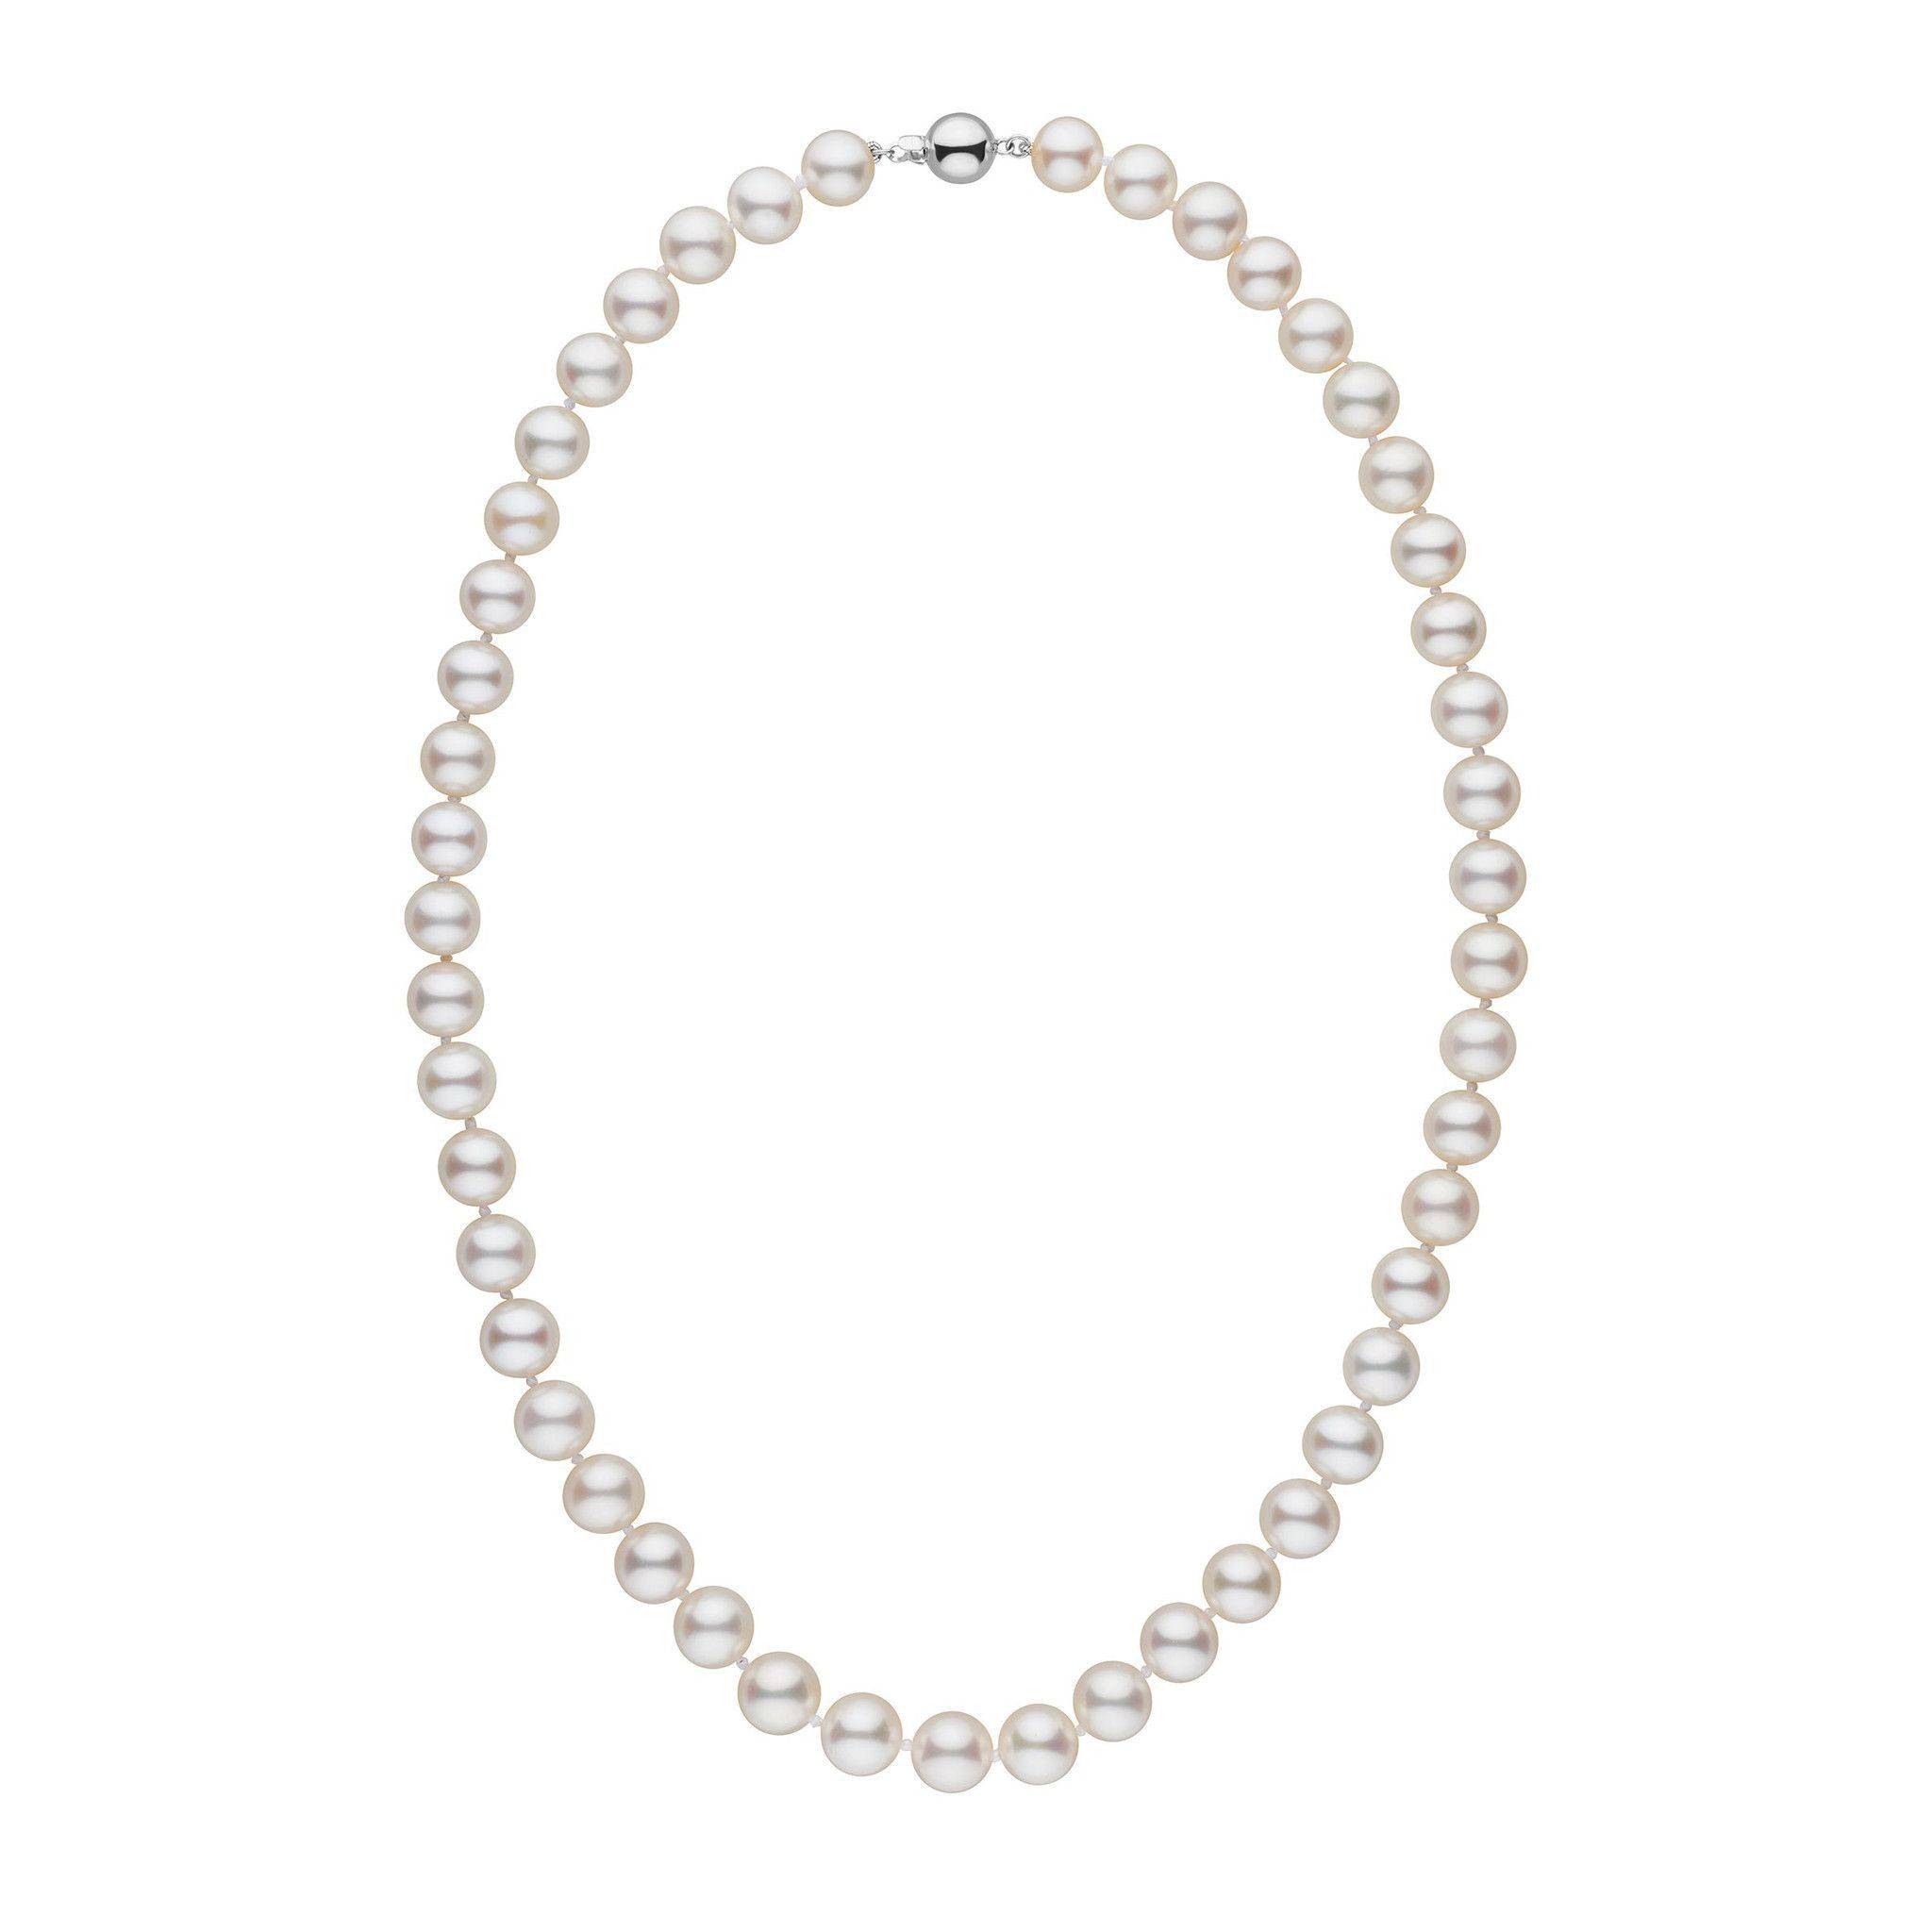 8.5-9.0 mm 18 Inch AAA White Freshwater Pearl Necklace